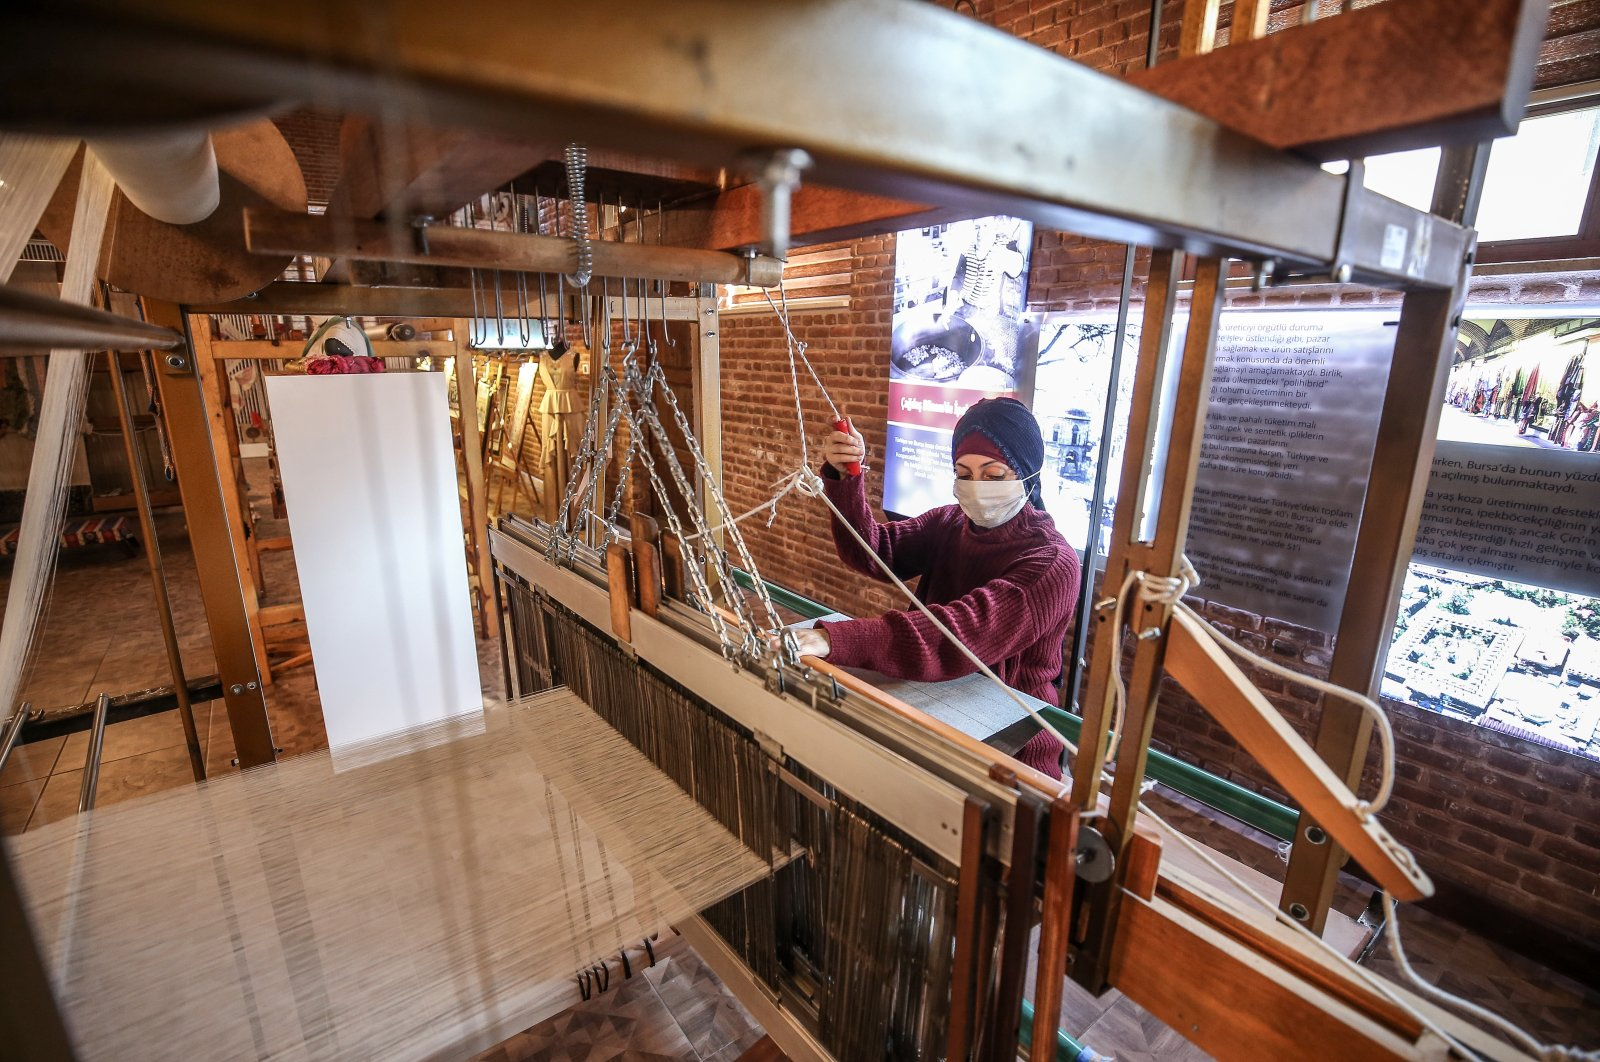 A weaver weaves fabric on the dobby jacquard loom at the Umurbey Silk Production and Design Center in Bursa, northwestern Turkey, Nov. 27, 2020. (AA PHOTO)